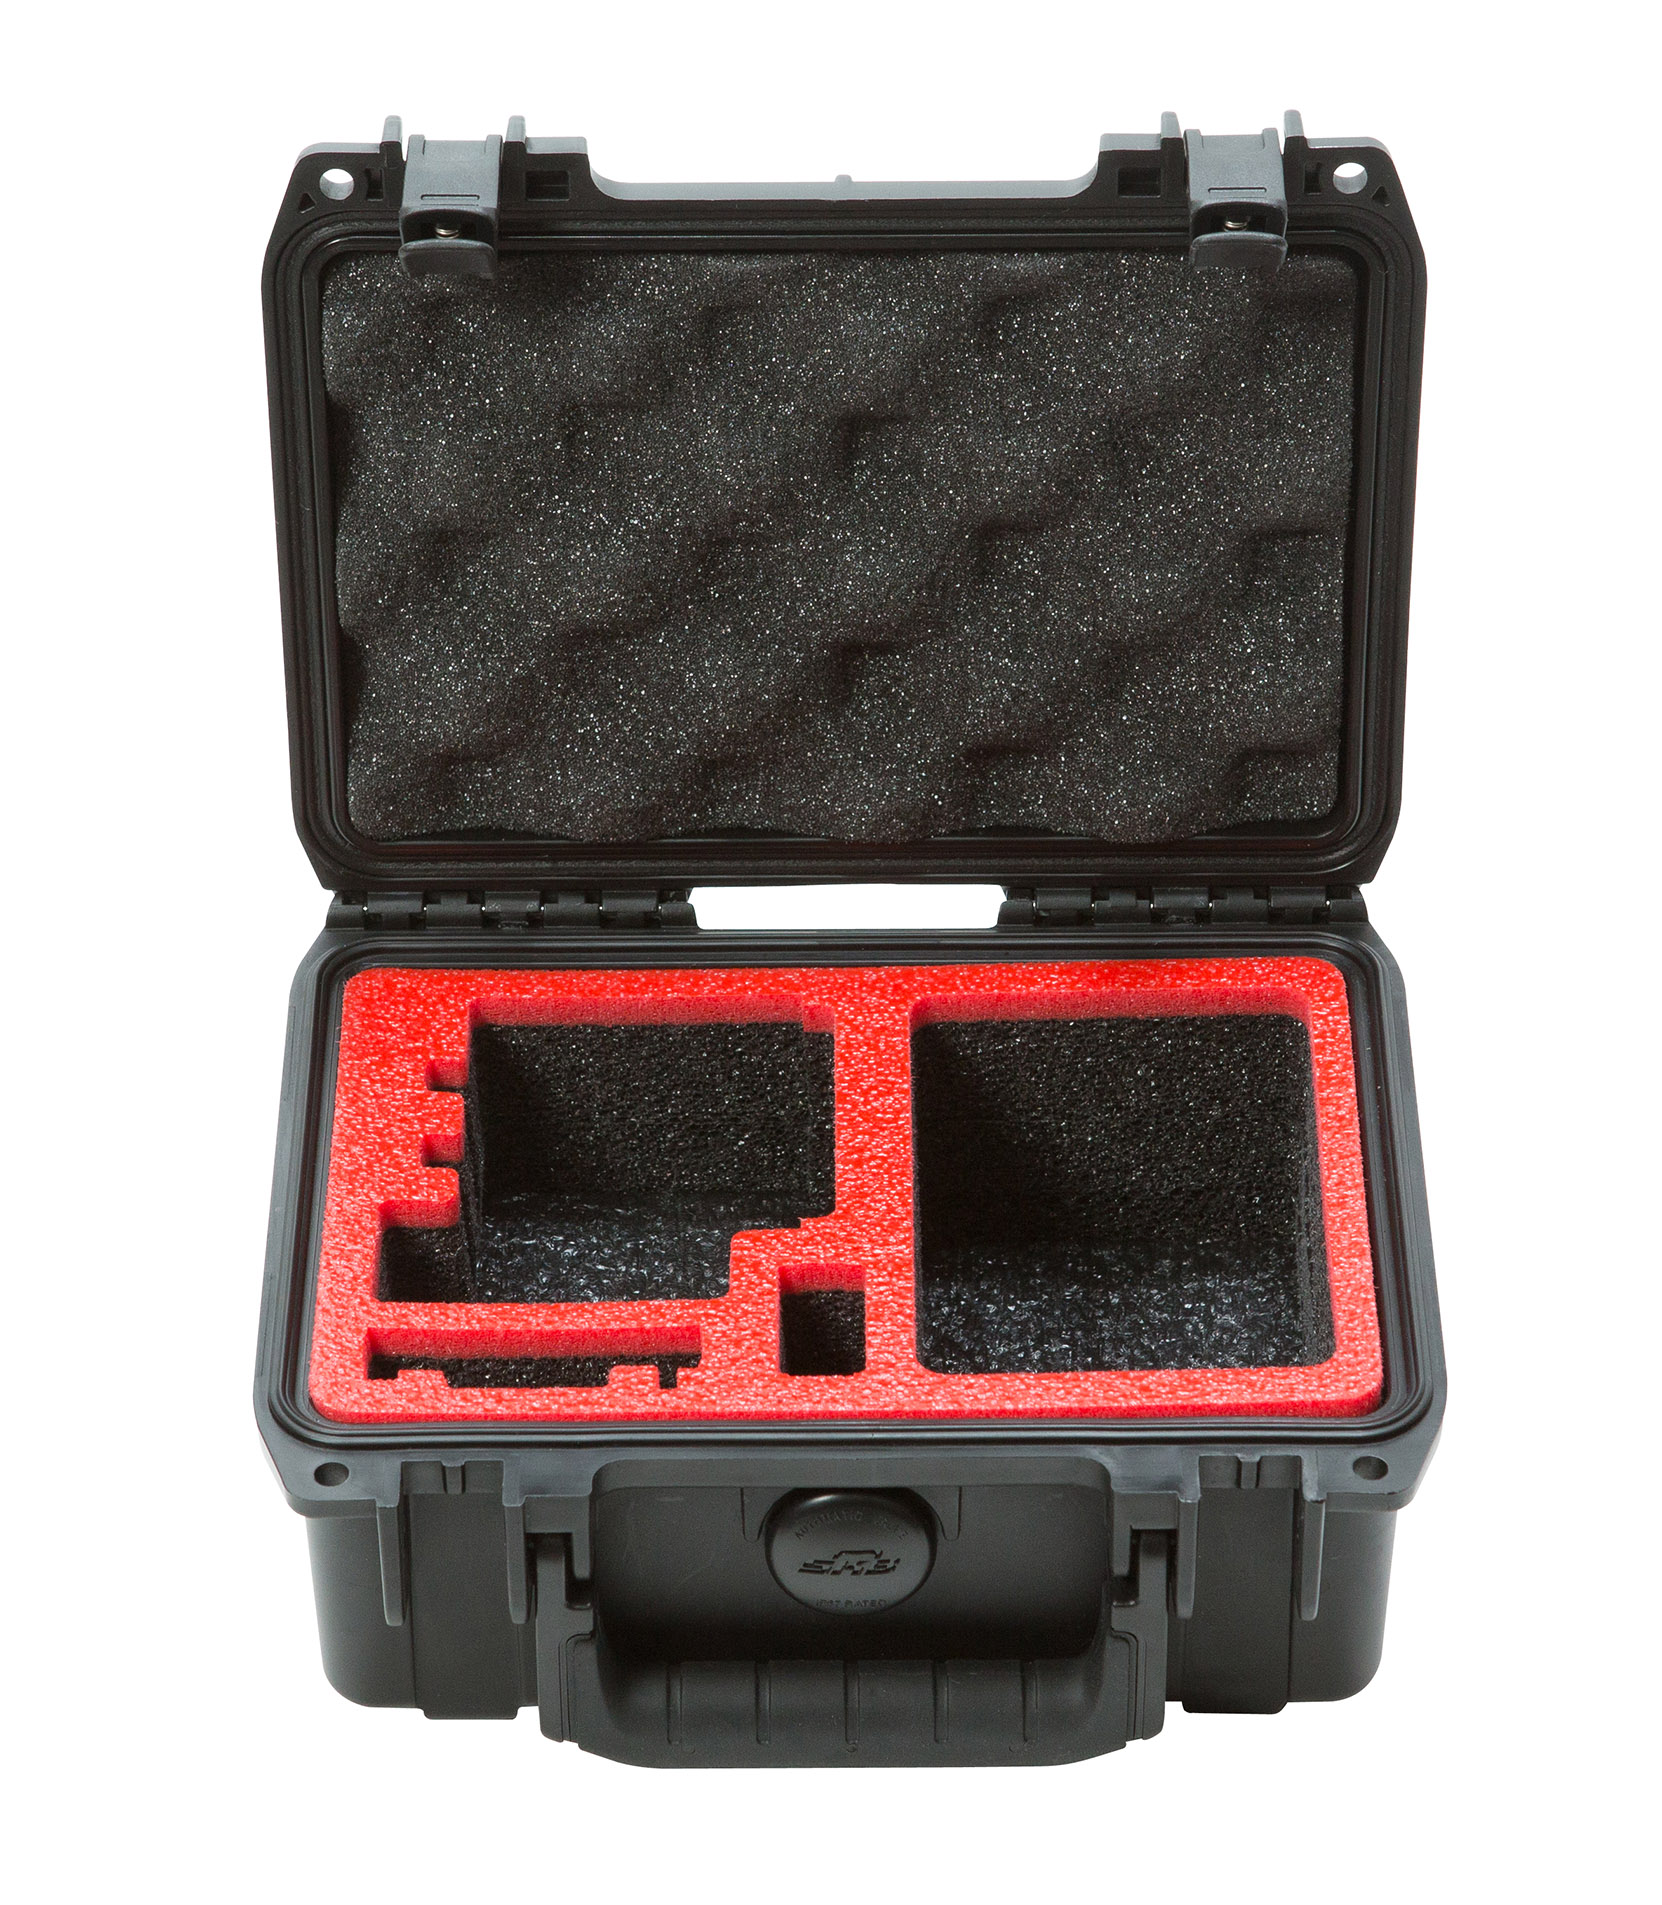 buy skb 3i 0705 3gp1 iseries single gopro camera case